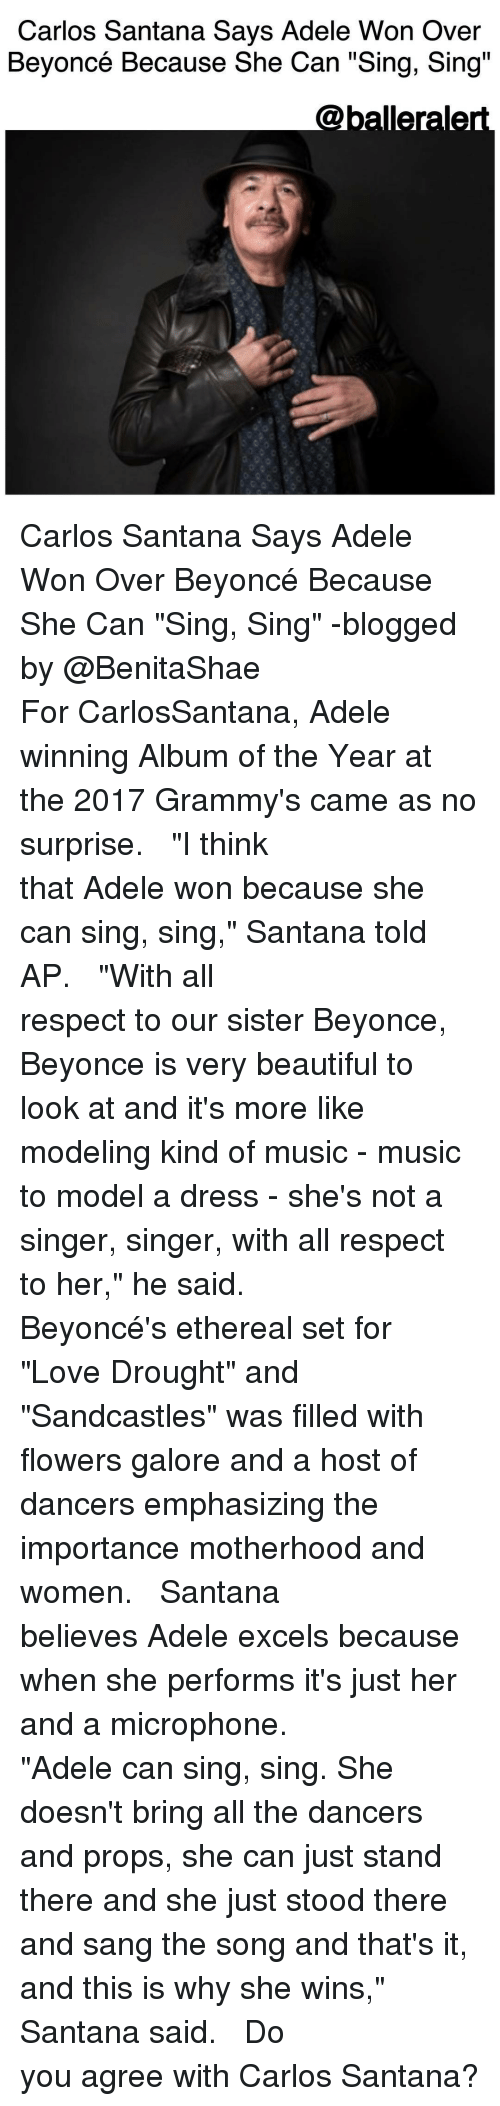 """adel: Carlos Santana Says Adele Won Over  Beyoncé Because She Can """"Sing, Sing""""  Caballerale Carlos Santana Says Adele Won Over Beyoncé Because She Can """"Sing, Sing"""" -blogged by @BenitaShae ⠀⠀⠀⠀⠀⠀⠀⠀⠀ ⠀⠀⠀⠀⠀⠀⠀⠀⠀ For CarlosSantana, Adele winning Album of the Year at the 2017 Grammy's came as no surprise. ⠀⠀⠀⠀⠀⠀⠀⠀⠀ ⠀⠀⠀⠀⠀⠀⠀⠀⠀ """"I think that Adele won because she can sing, sing,"""" Santana told AP. ⠀⠀⠀⠀⠀⠀⠀⠀⠀ ⠀⠀⠀⠀⠀⠀⠀⠀⠀ """"With all respect to our sister Beyonce, Beyonce is very beautiful to look at and it's more like modeling kind of music - music to model a dress - she's not a singer, singer, with all respect to her,"""" he said. ⠀⠀⠀⠀⠀⠀⠀⠀⠀ ⠀⠀⠀⠀⠀⠀⠀⠀⠀ Beyoncé's ethereal set for """"Love Drought"""" and """"Sandcastles"""" was filled with flowers galore and a host of dancers emphasizing the importance motherhood and women. ⠀⠀⠀⠀⠀⠀⠀⠀⠀ ⠀⠀⠀⠀⠀⠀⠀⠀⠀ Santana believes Adele excels because when she performs it's just her and a microphone. ⠀⠀⠀⠀⠀⠀⠀⠀⠀ ⠀⠀⠀⠀⠀⠀⠀⠀⠀ """"Adele can sing, sing. She doesn't bring all the dancers and props, she can just stand there and she just stood there and sang the song and that's it, and this is why she wins,"""" Santana said. ⠀⠀⠀⠀⠀⠀⠀⠀⠀ ⠀⠀⠀⠀⠀⠀⠀⠀⠀ Do you agree with Carlos Santana?"""